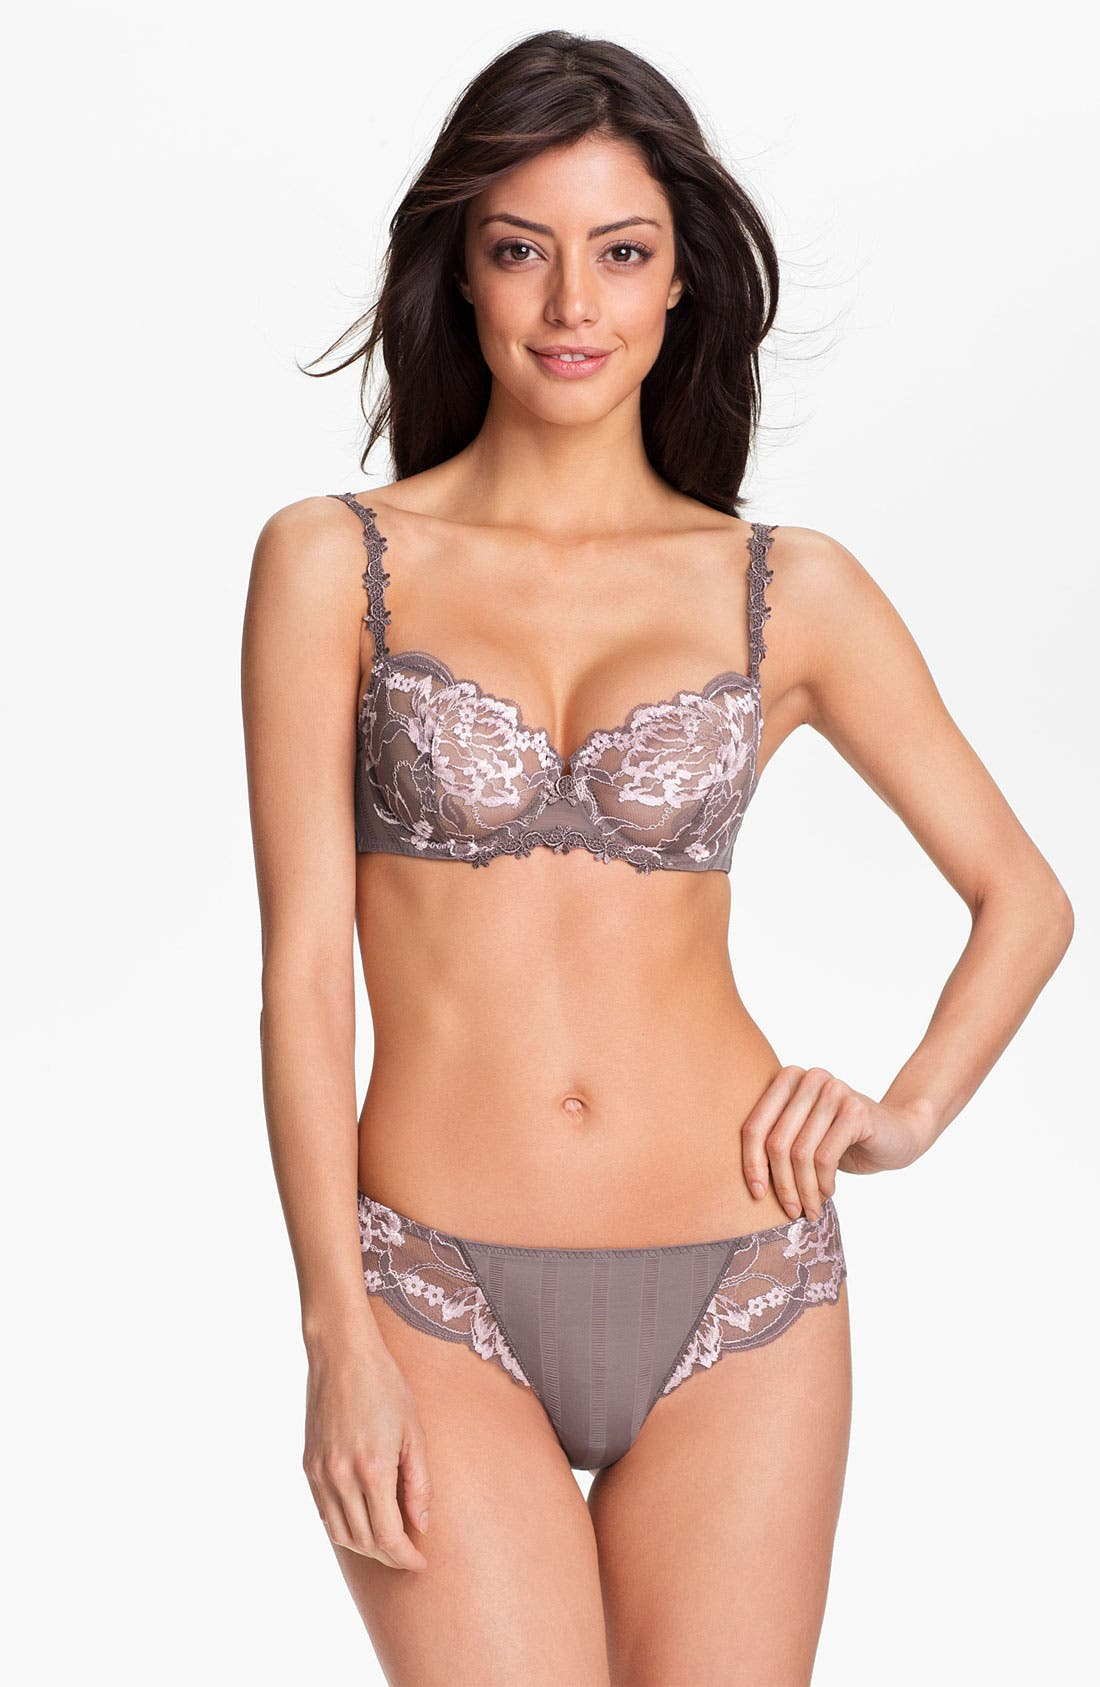 'Amour' Underwire Demi Bra,                             Alternate thumbnail 37, color,